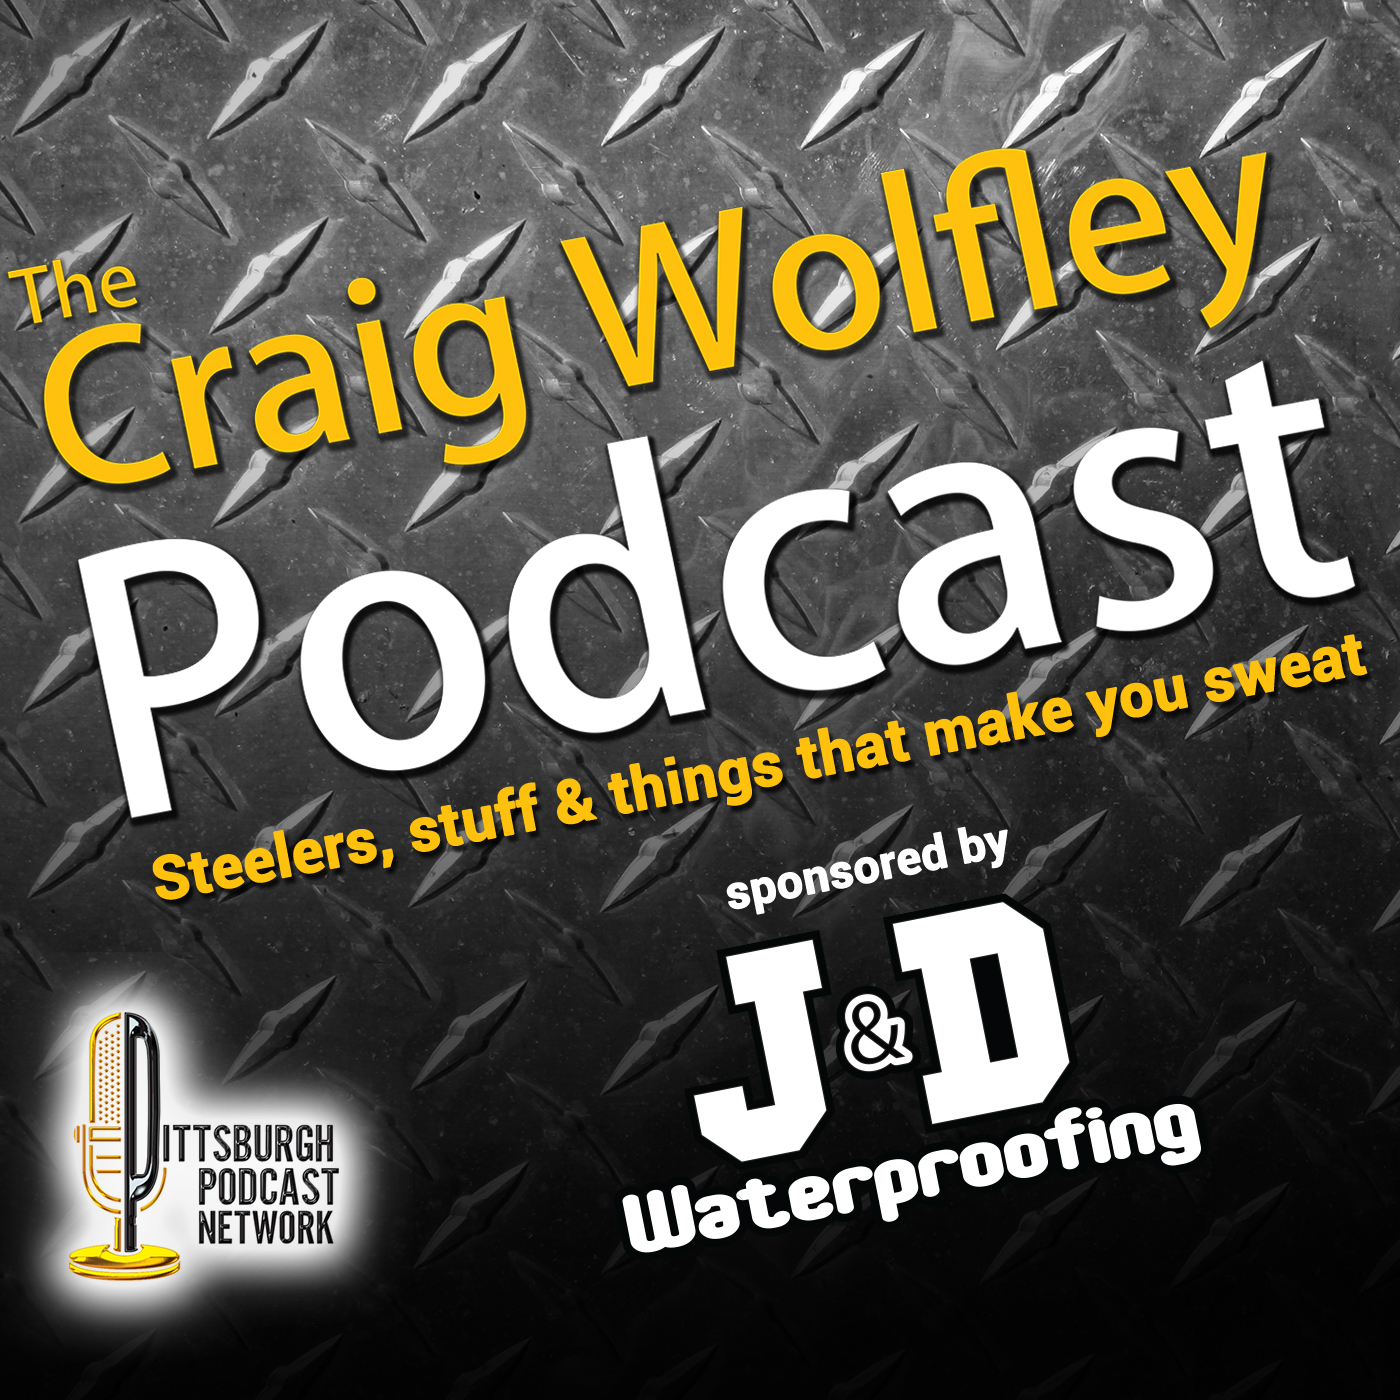 4e4739abea6 Craig Wolfley Pittsburgh Steelers Podcast